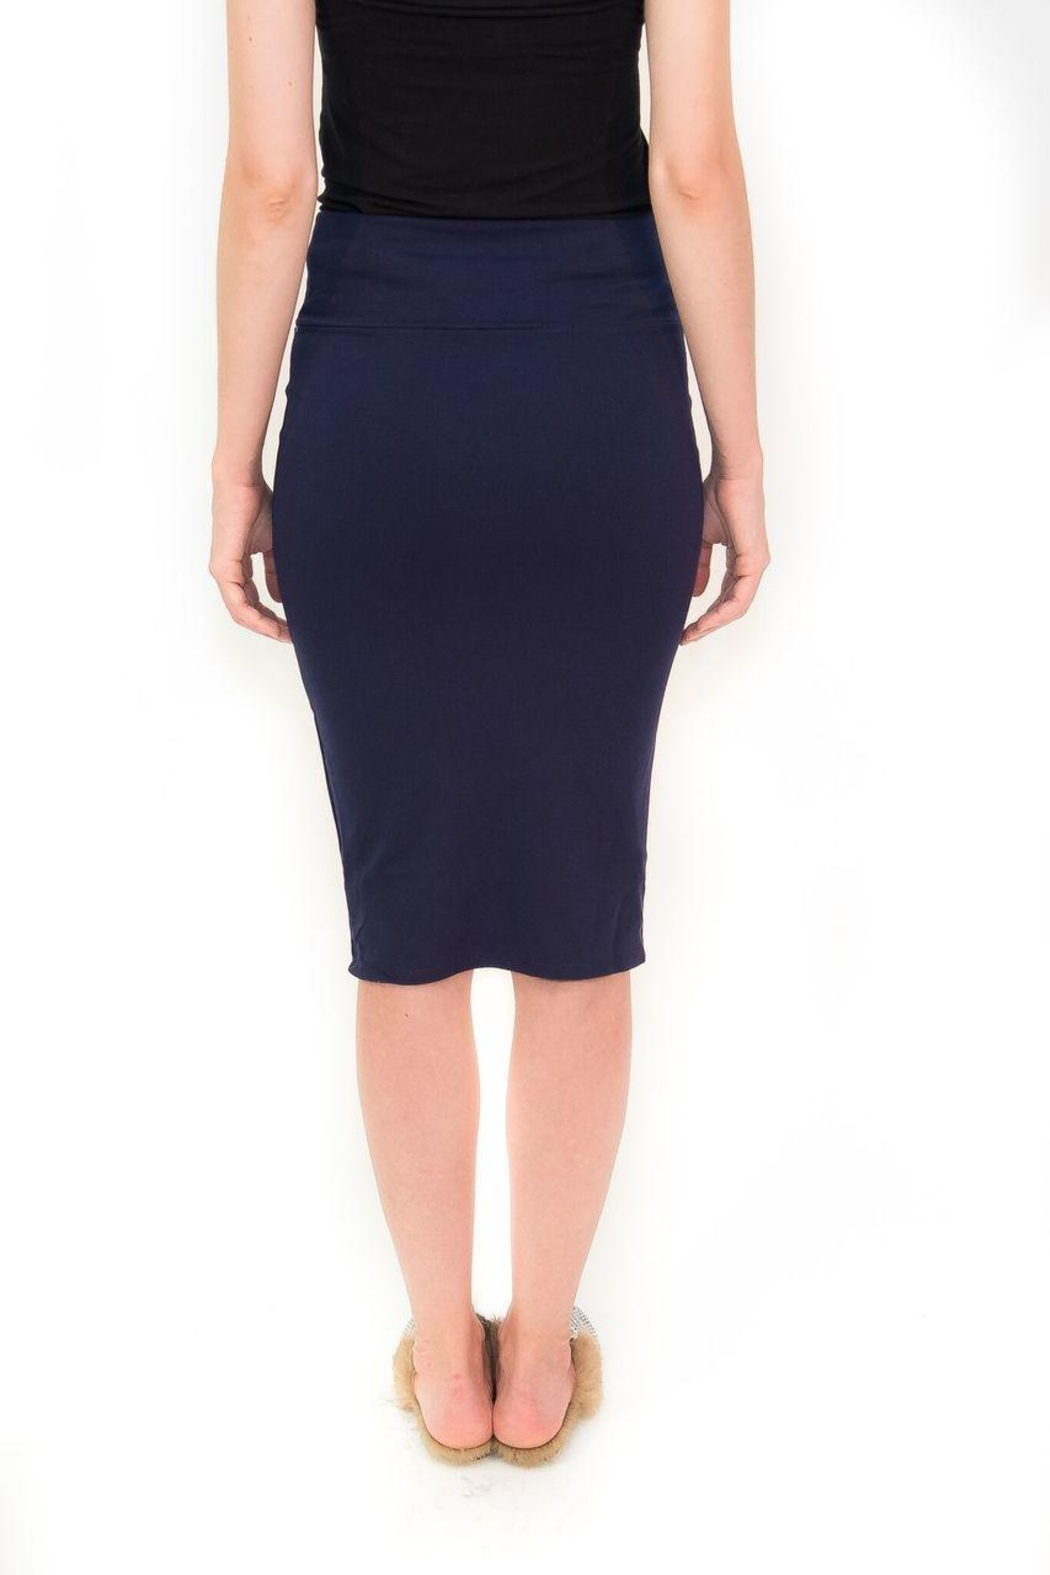 Maya's Place Knee-Length Pencil Skirt - Side Cropped Image